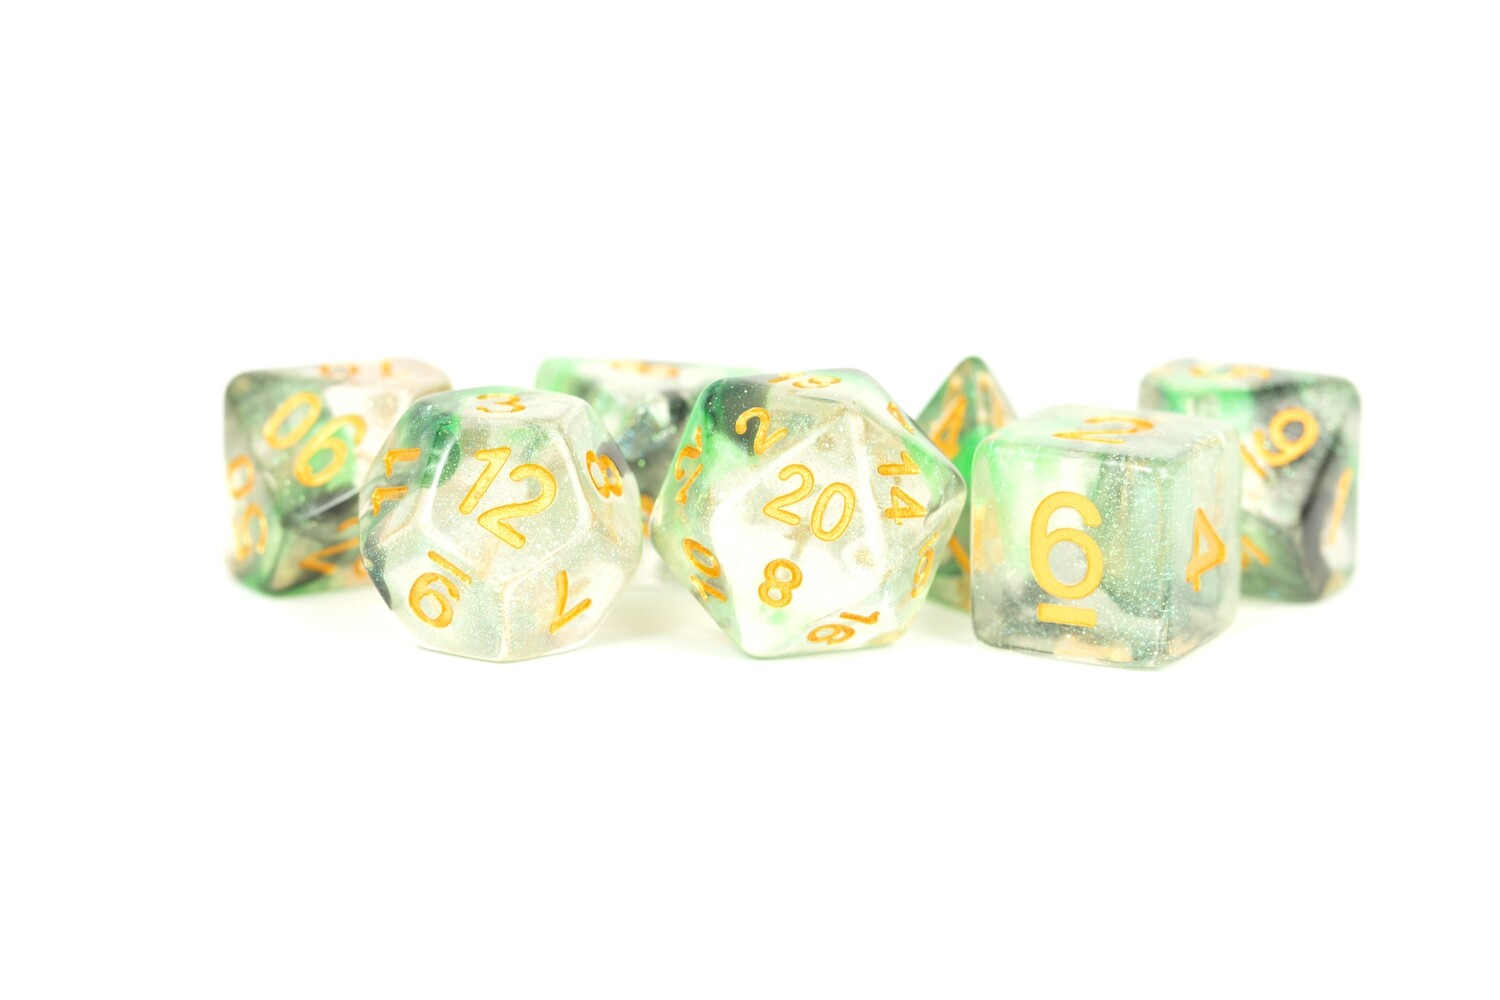 Luminous Venom 16mm Polyhedral 7 Dice Set Tabletop RPG CCG Board Games Counter Token Markers Decision Makers Roll Dungeon Pathfinder